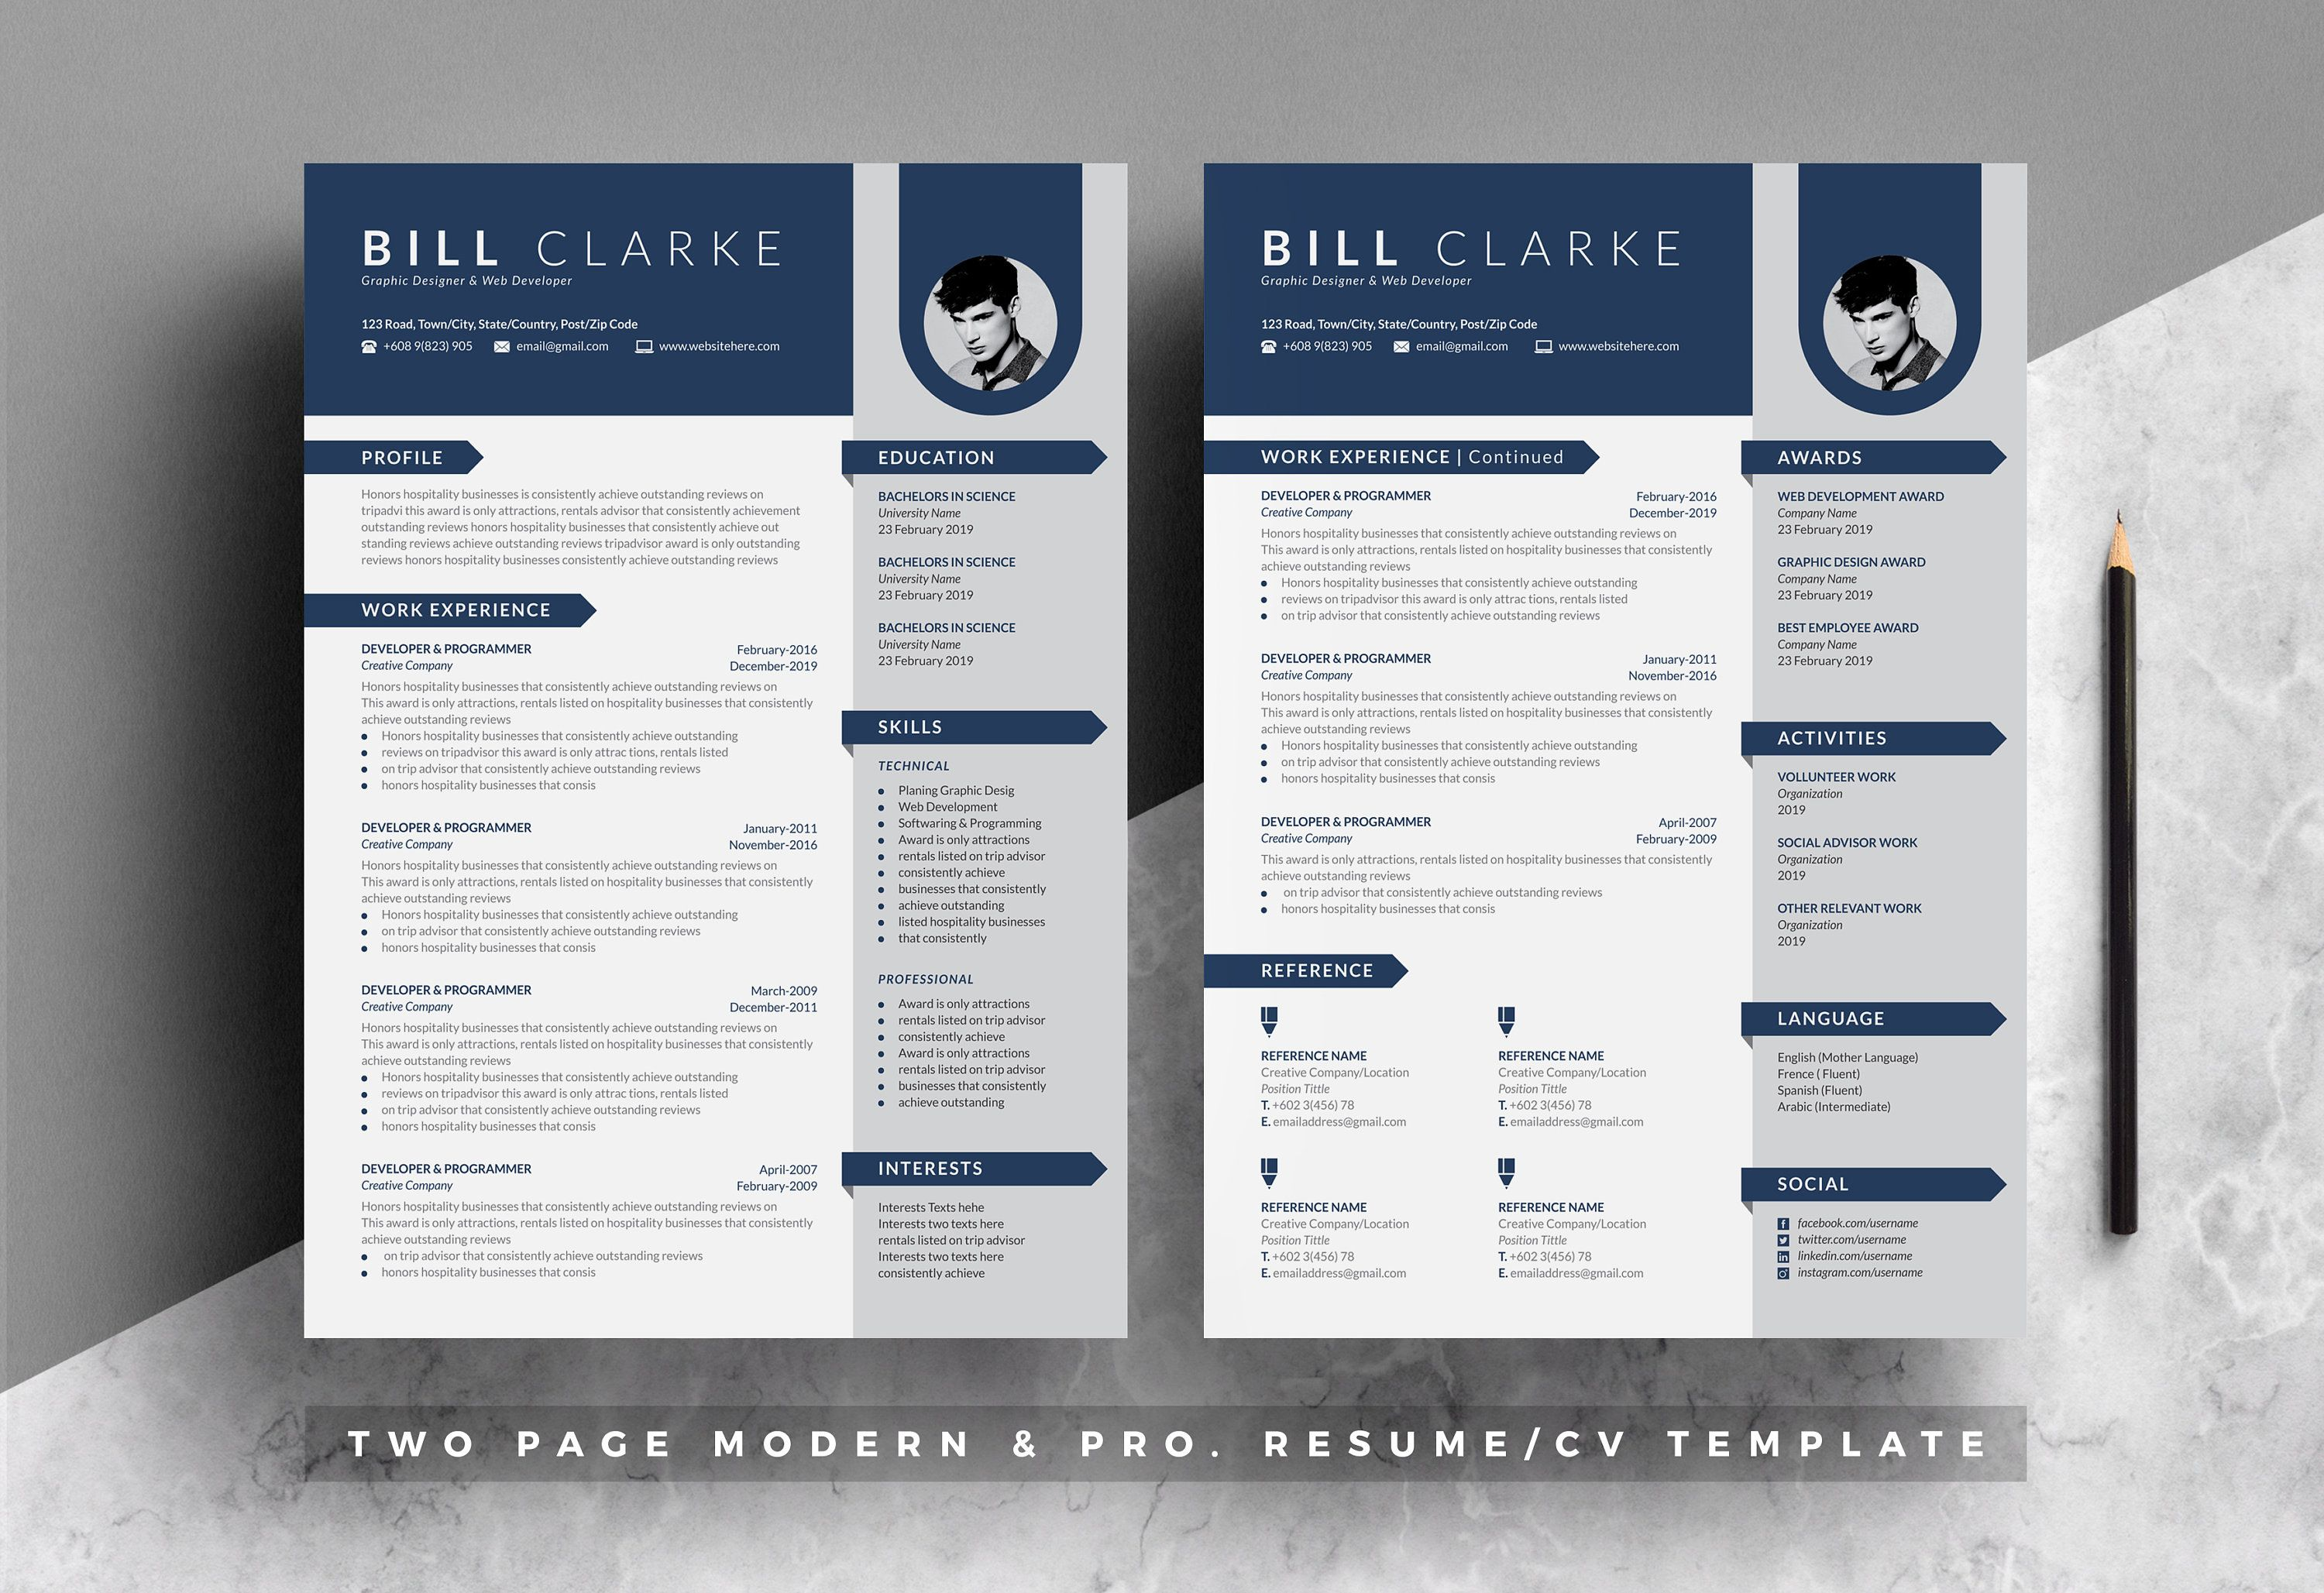 Modern Resume Cv Template For Word Photoshop Resume Cv Etsy In 2021 Resume Template Cover Letter For Resume Creative Resume Templates